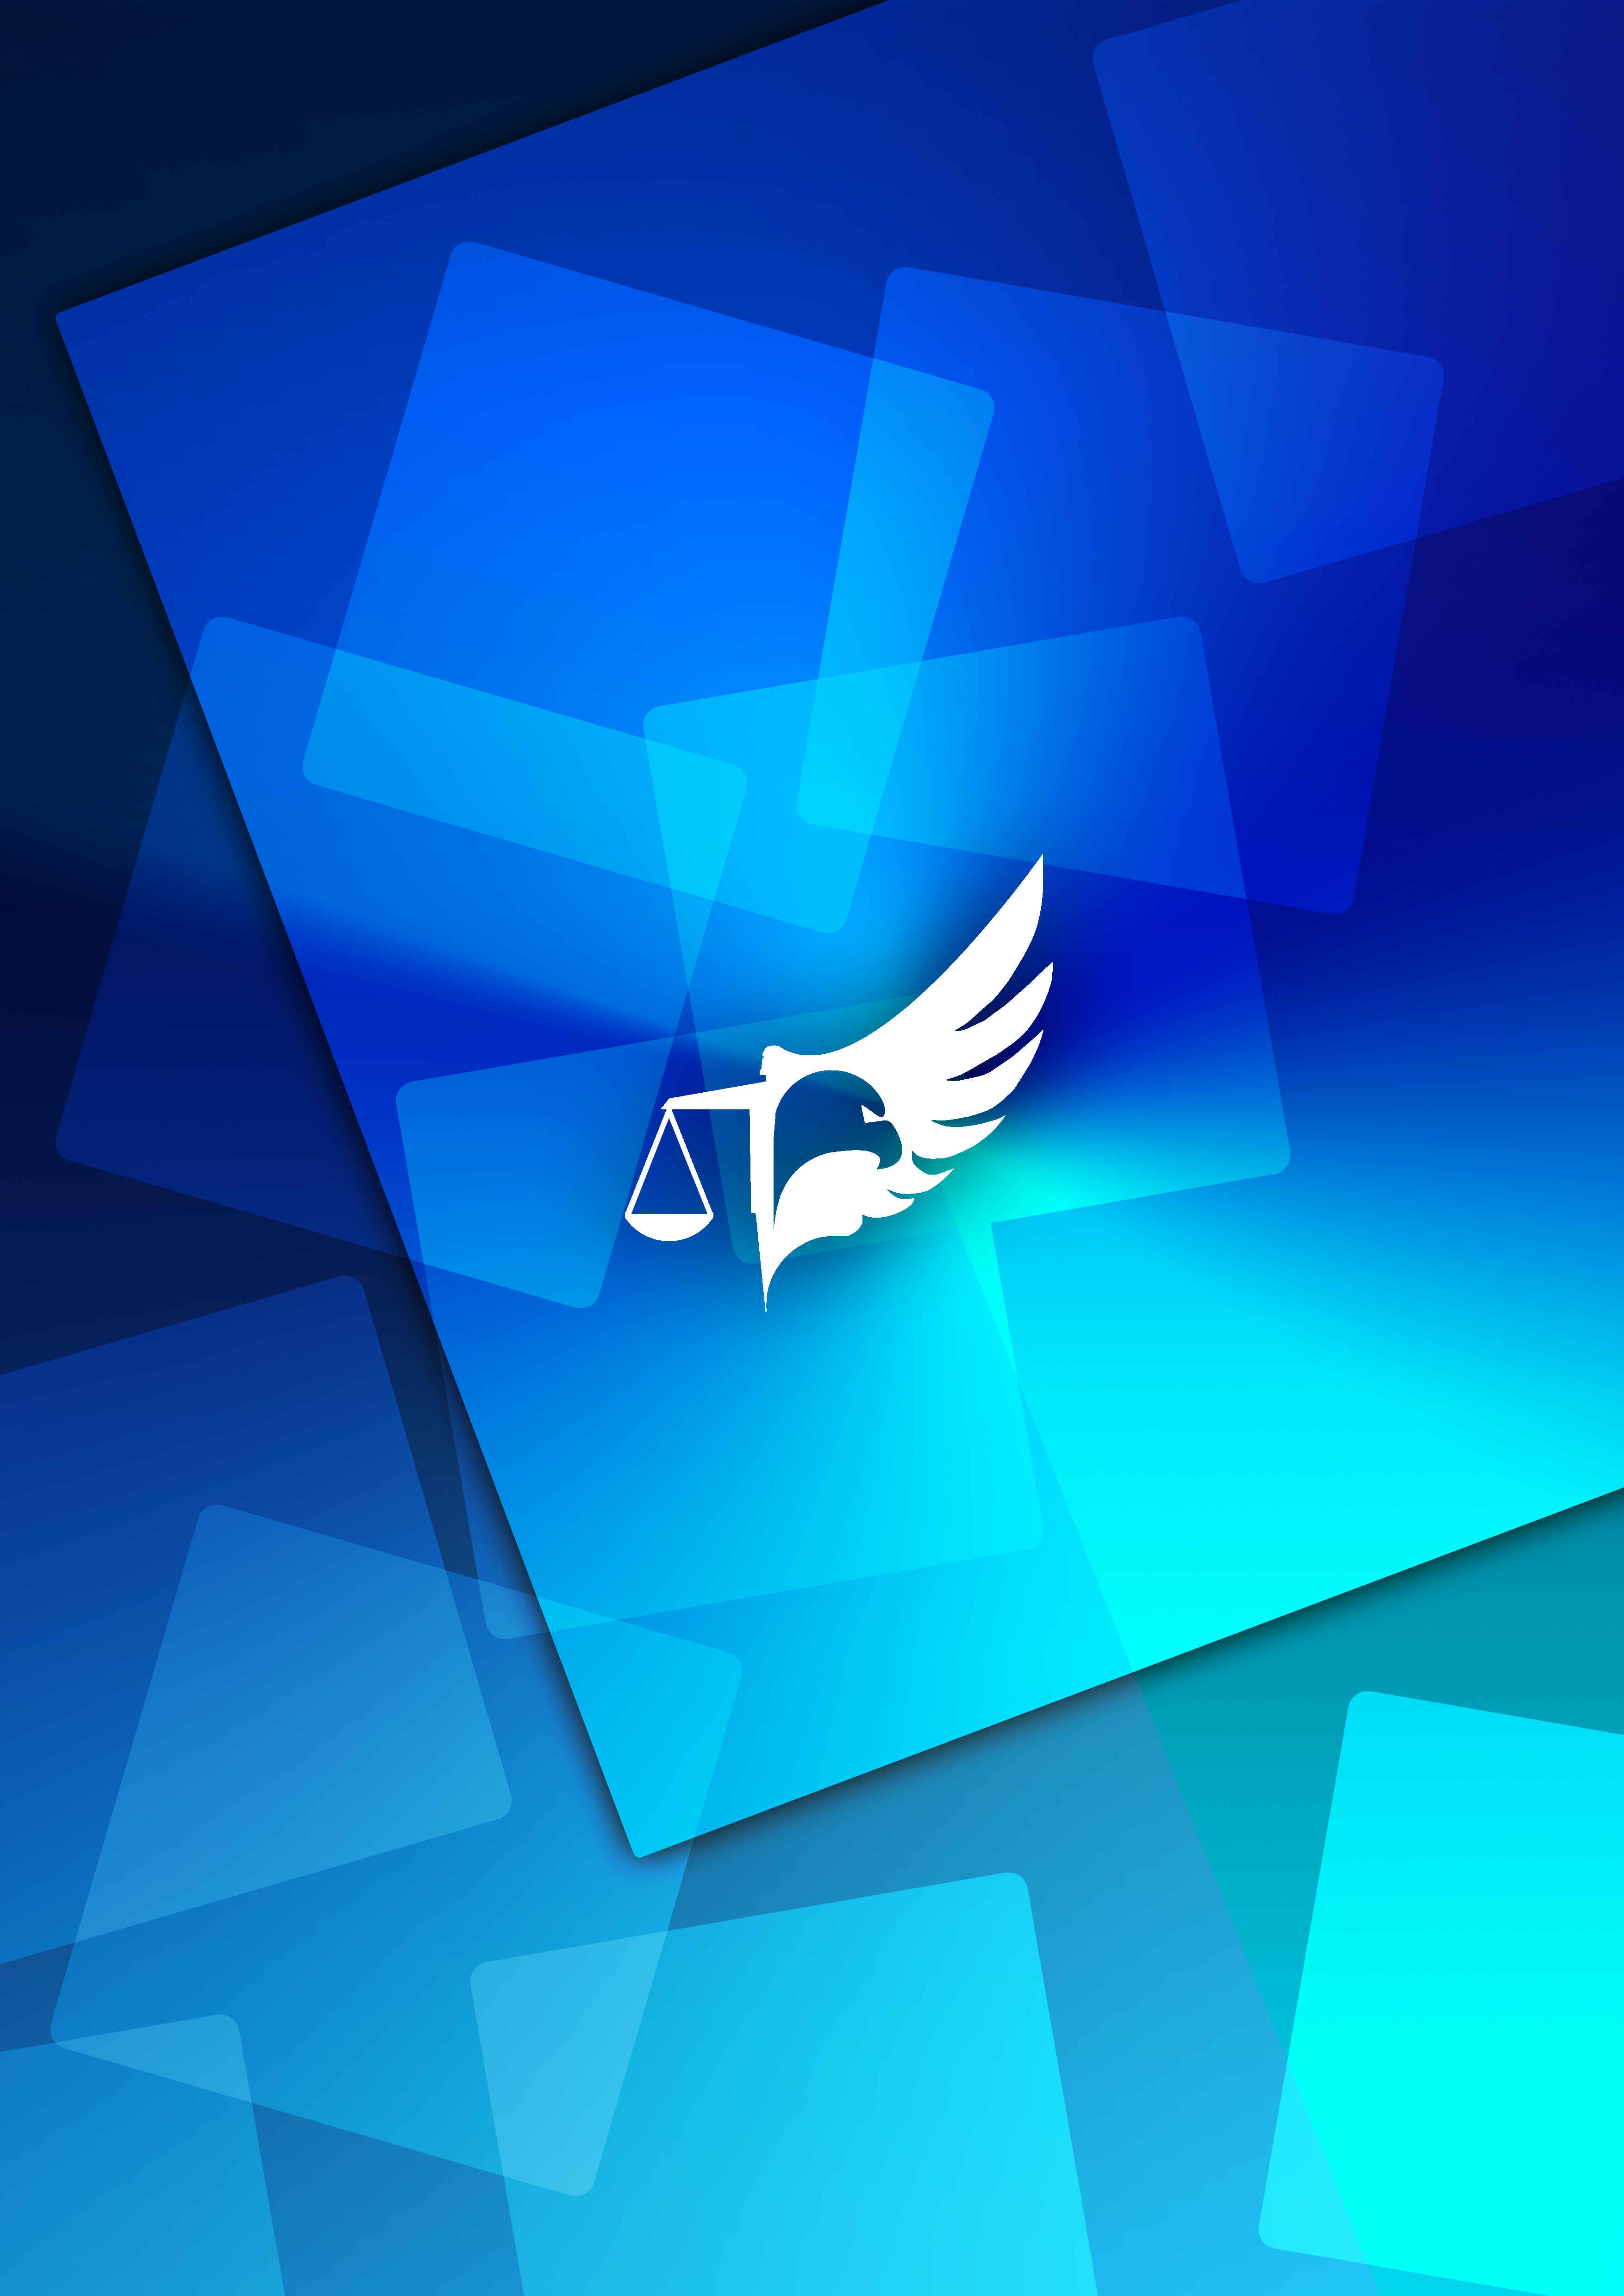 WALLPAPERS FALCONE TABLET BLUE